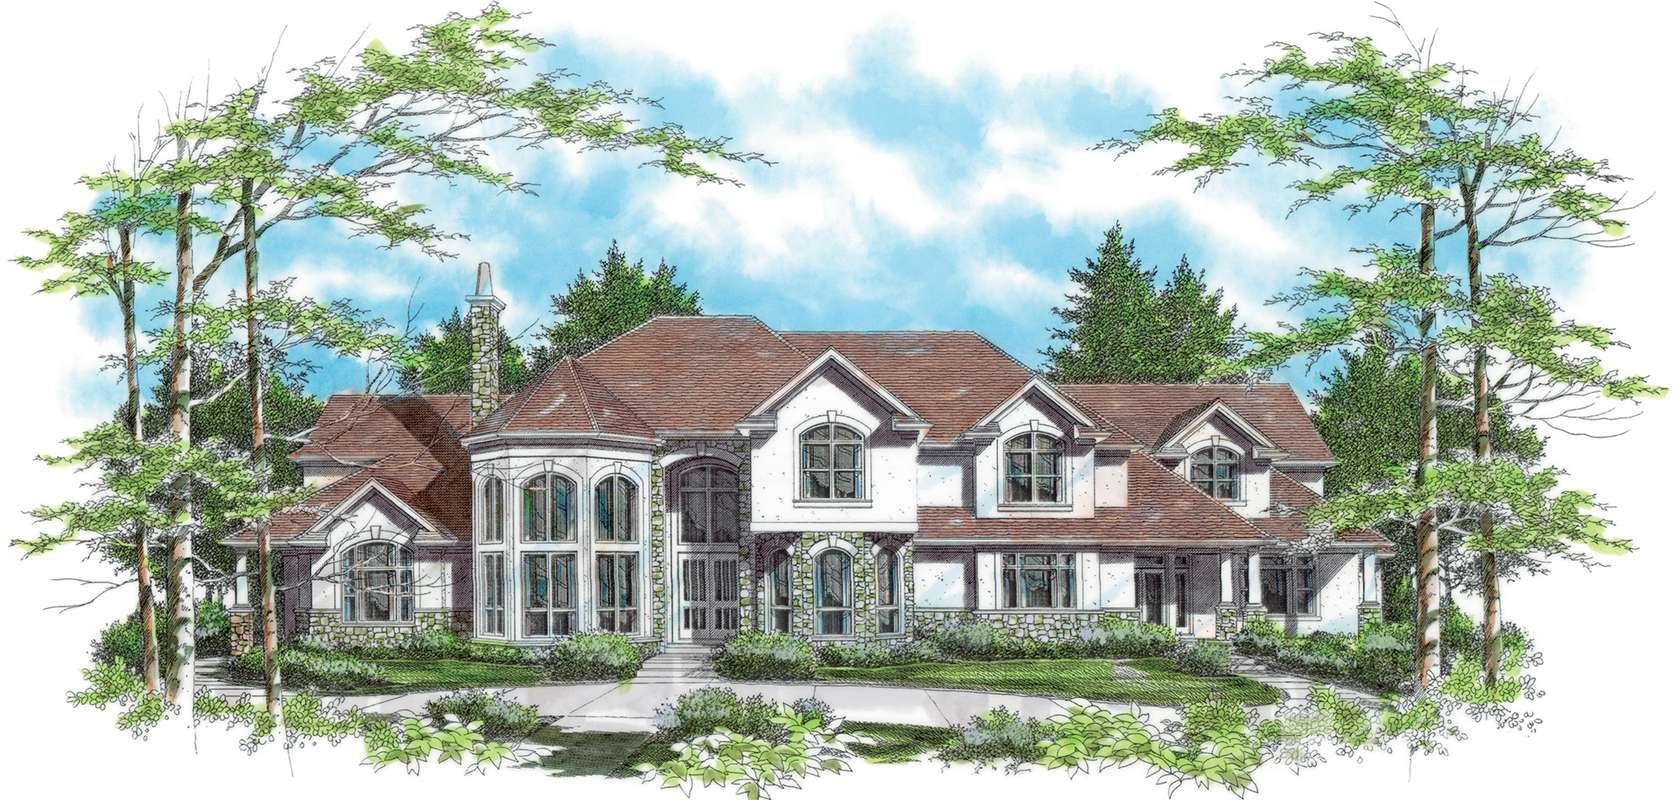 Mascord House Plan 2416: The Morley